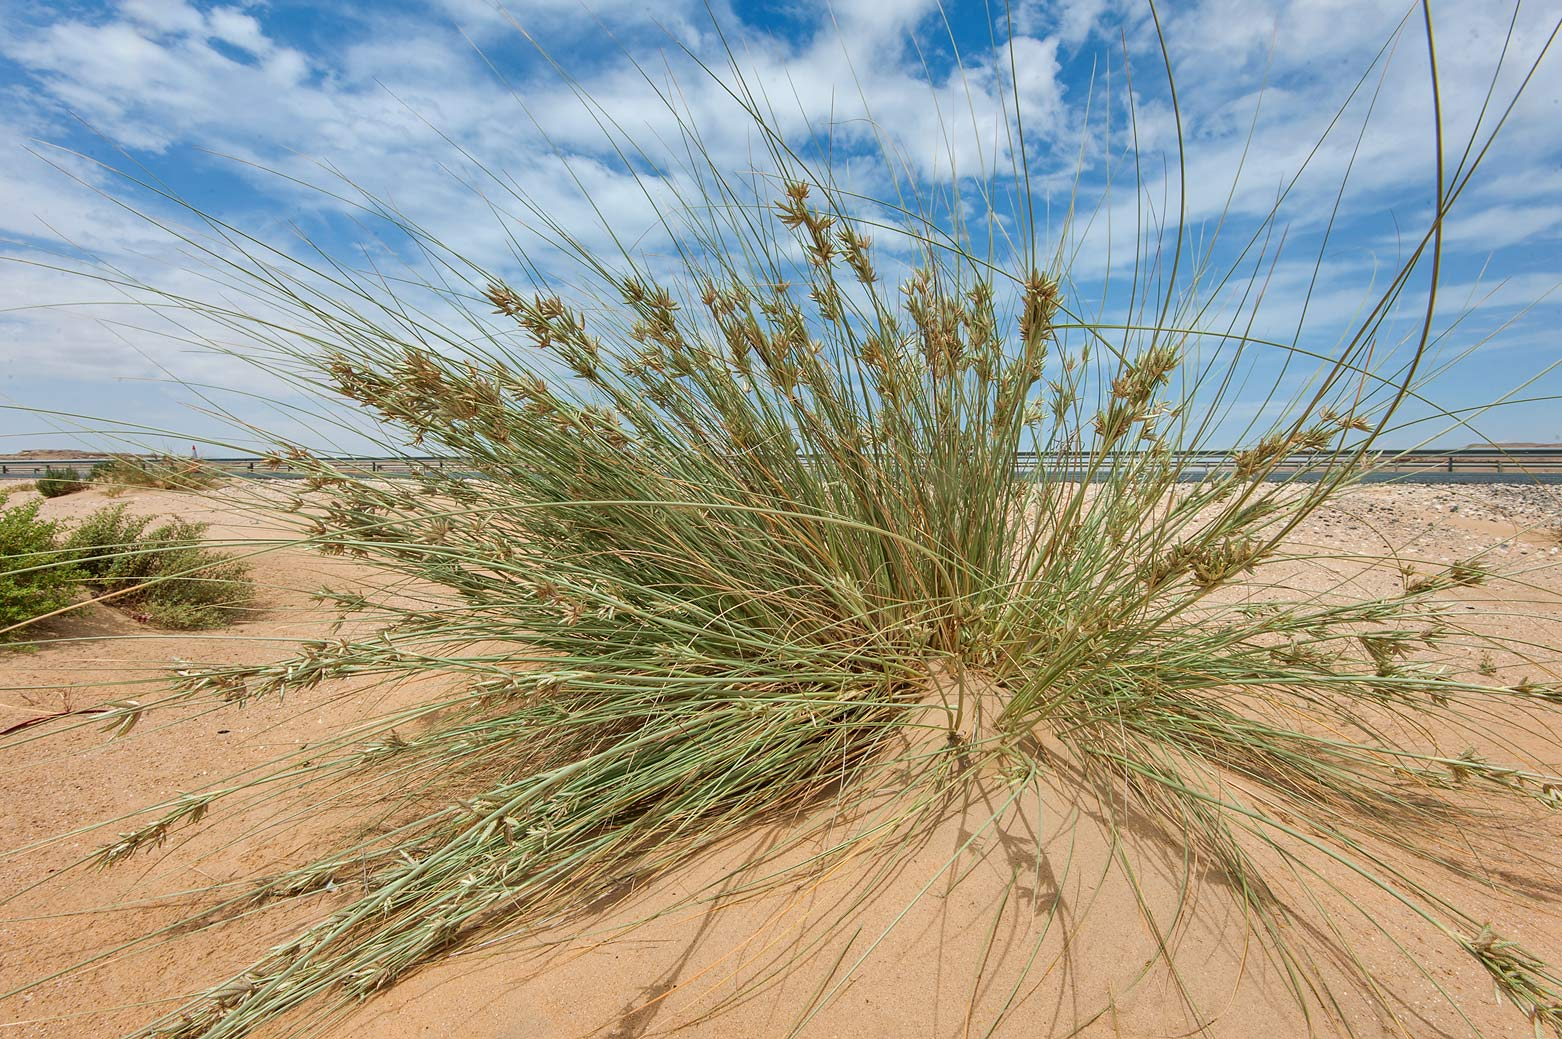 Large sedge (Cyperus conglomeratus) in windblown...area of Rawdat Ekdaim. Southern Qatar